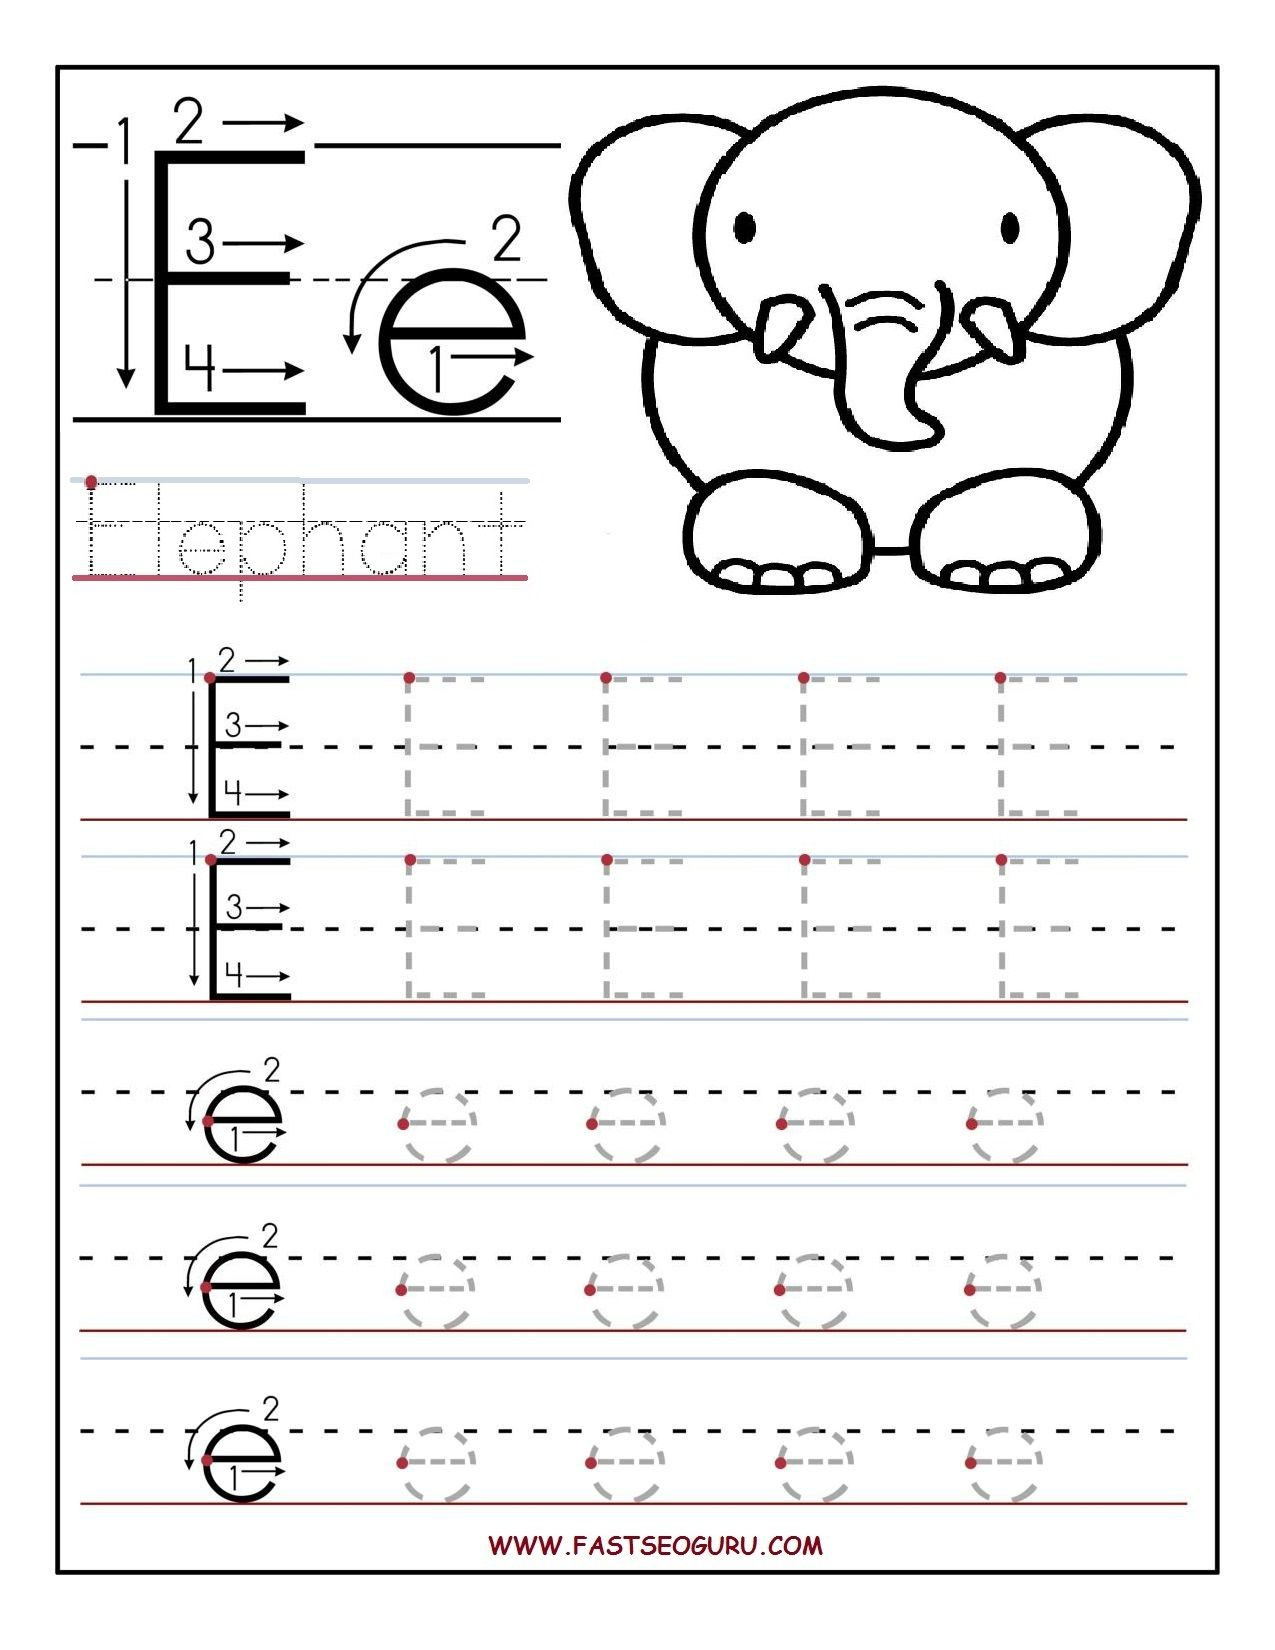 Pinvilfran Gason On Decor | Letter E Worksheets, Letter Tracing | Printable Letter E Worksheets For Preschool